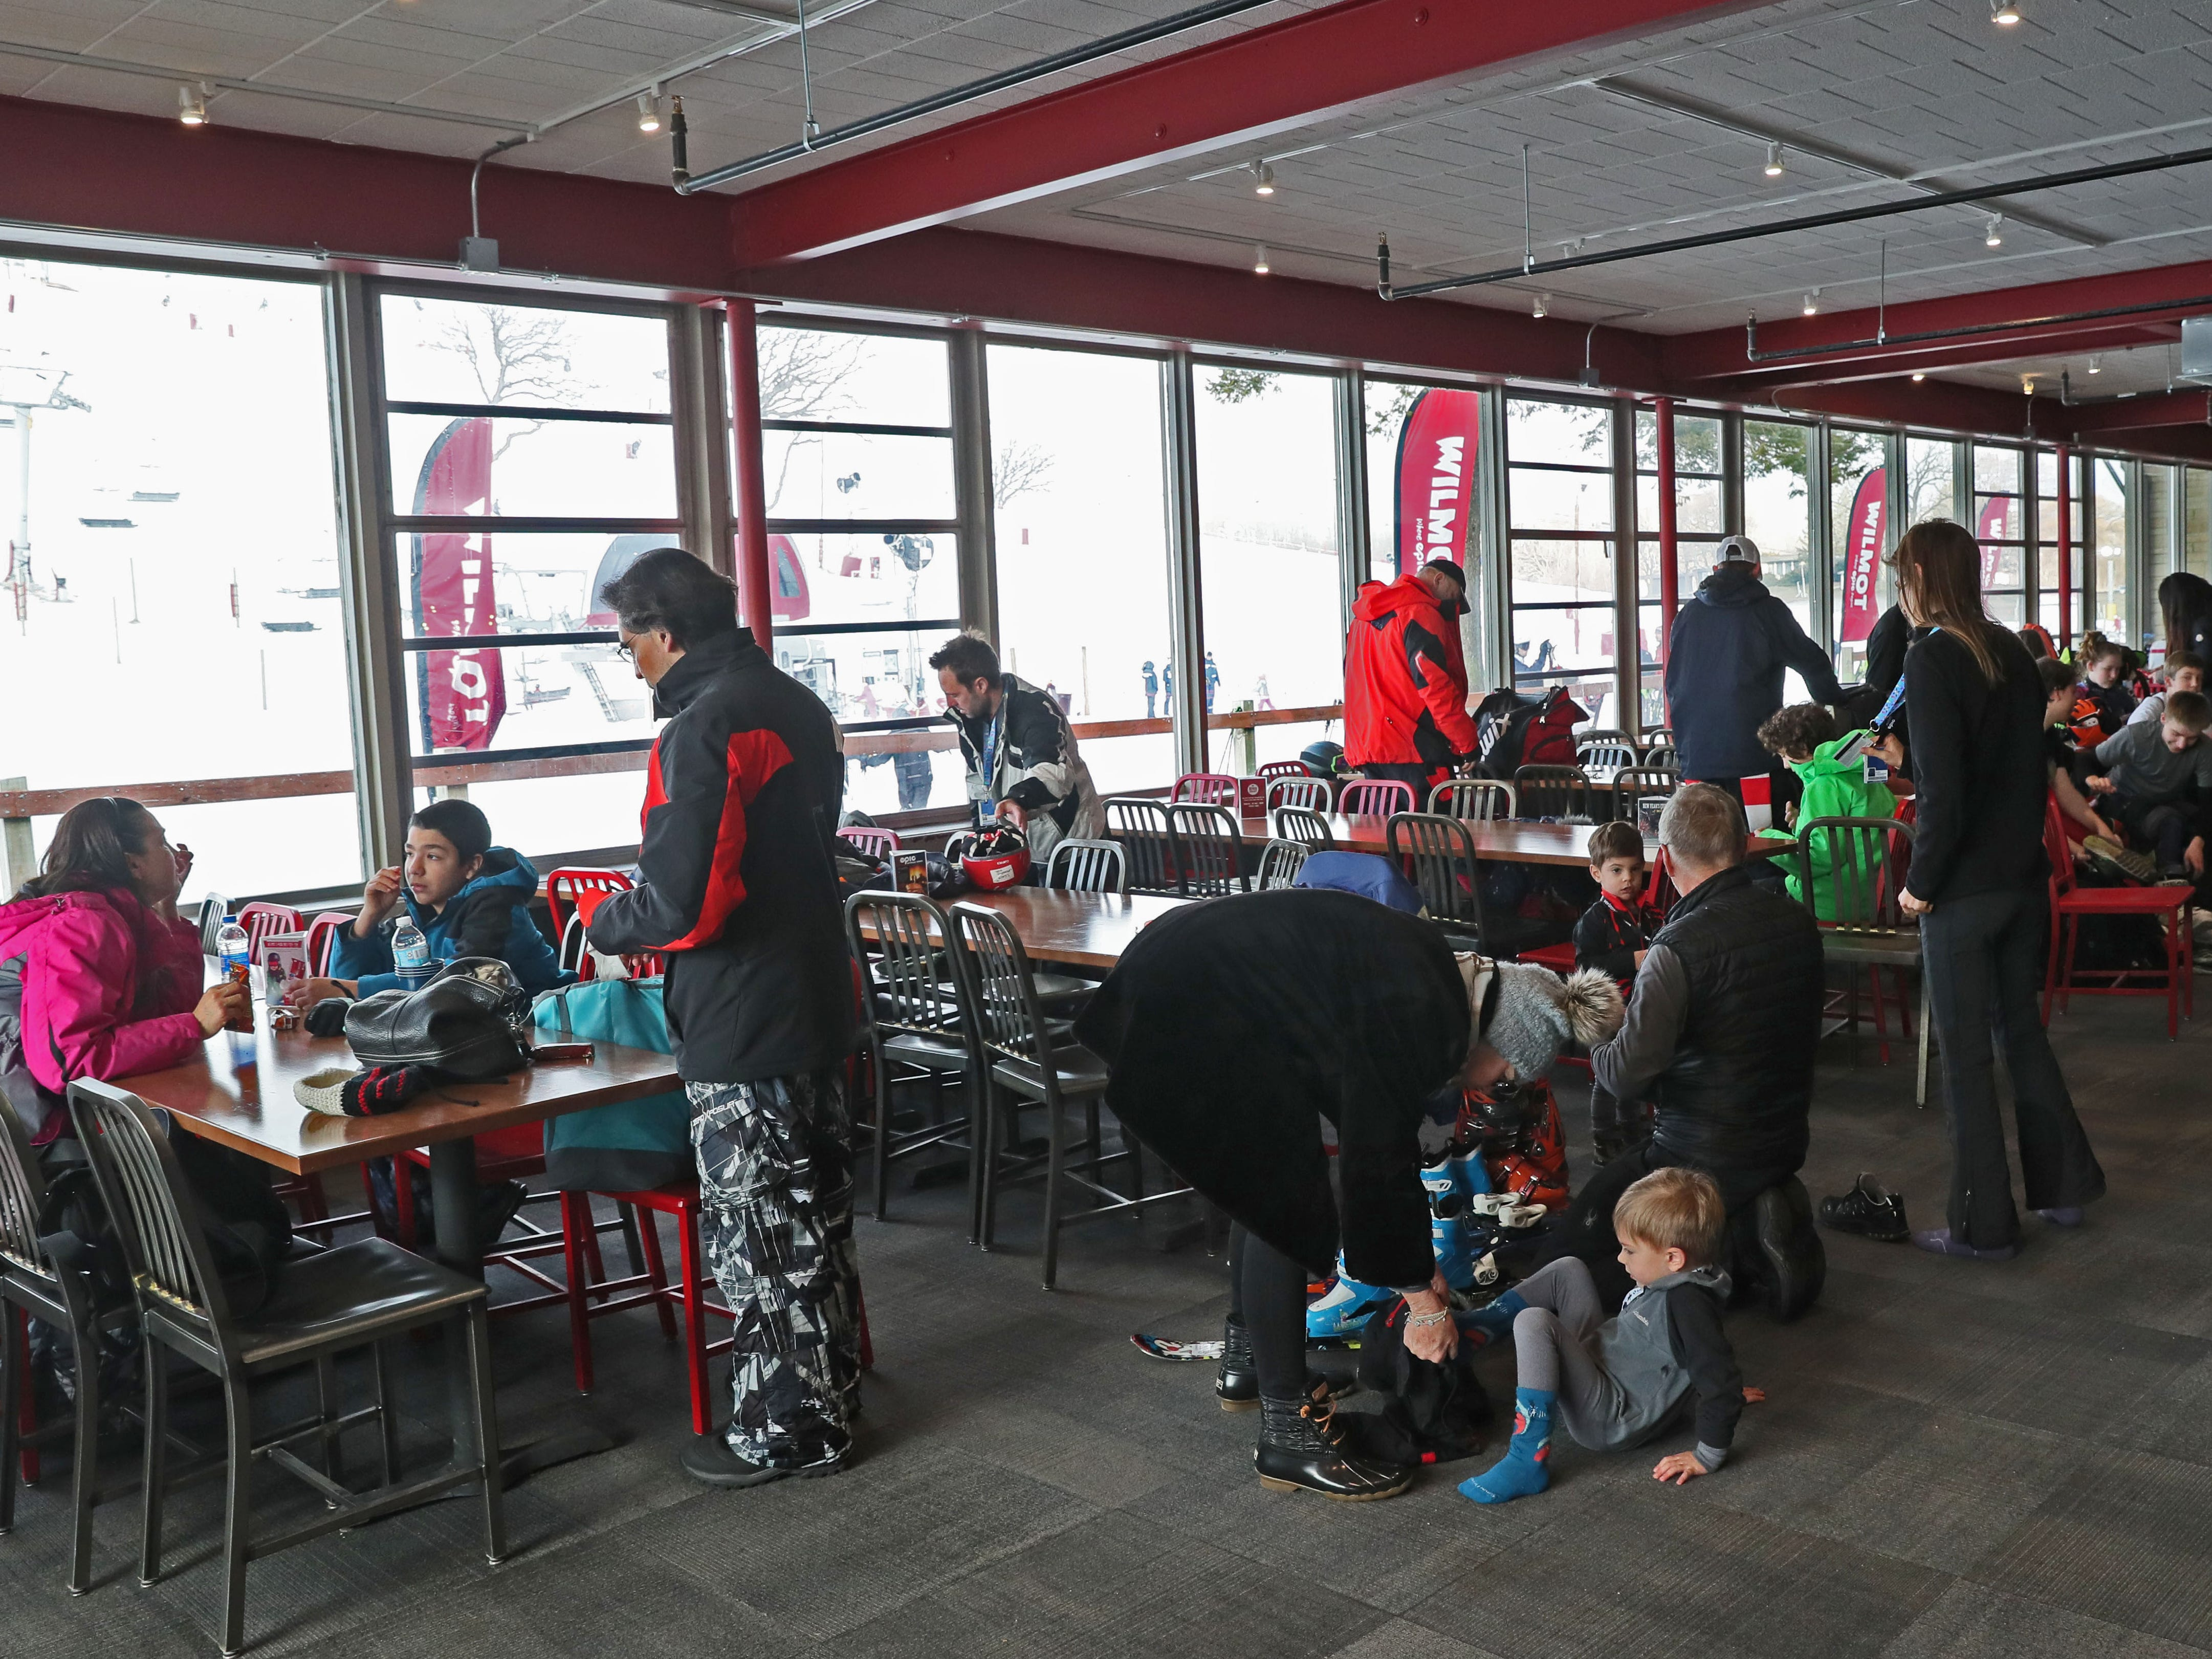 People get their gear on and can grab something to eat or warm up in the lodge area at Wilmot Mountain.